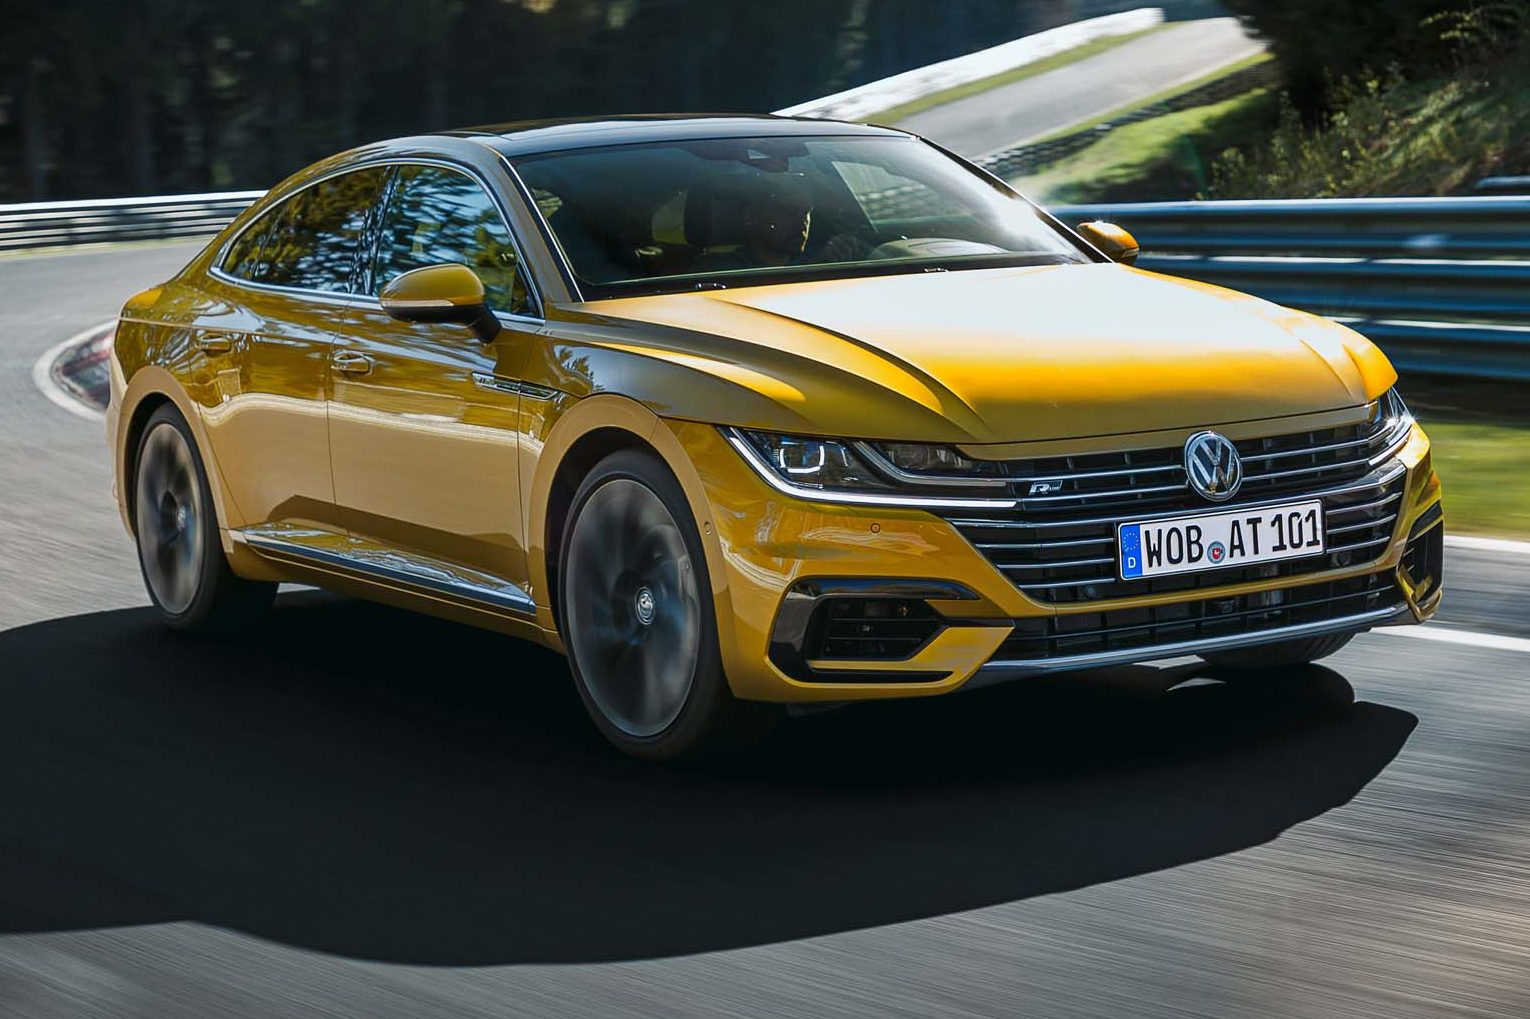 2019 Volkswagen Arteon R Line Front Three Quarters Turn 03 E1497282283872